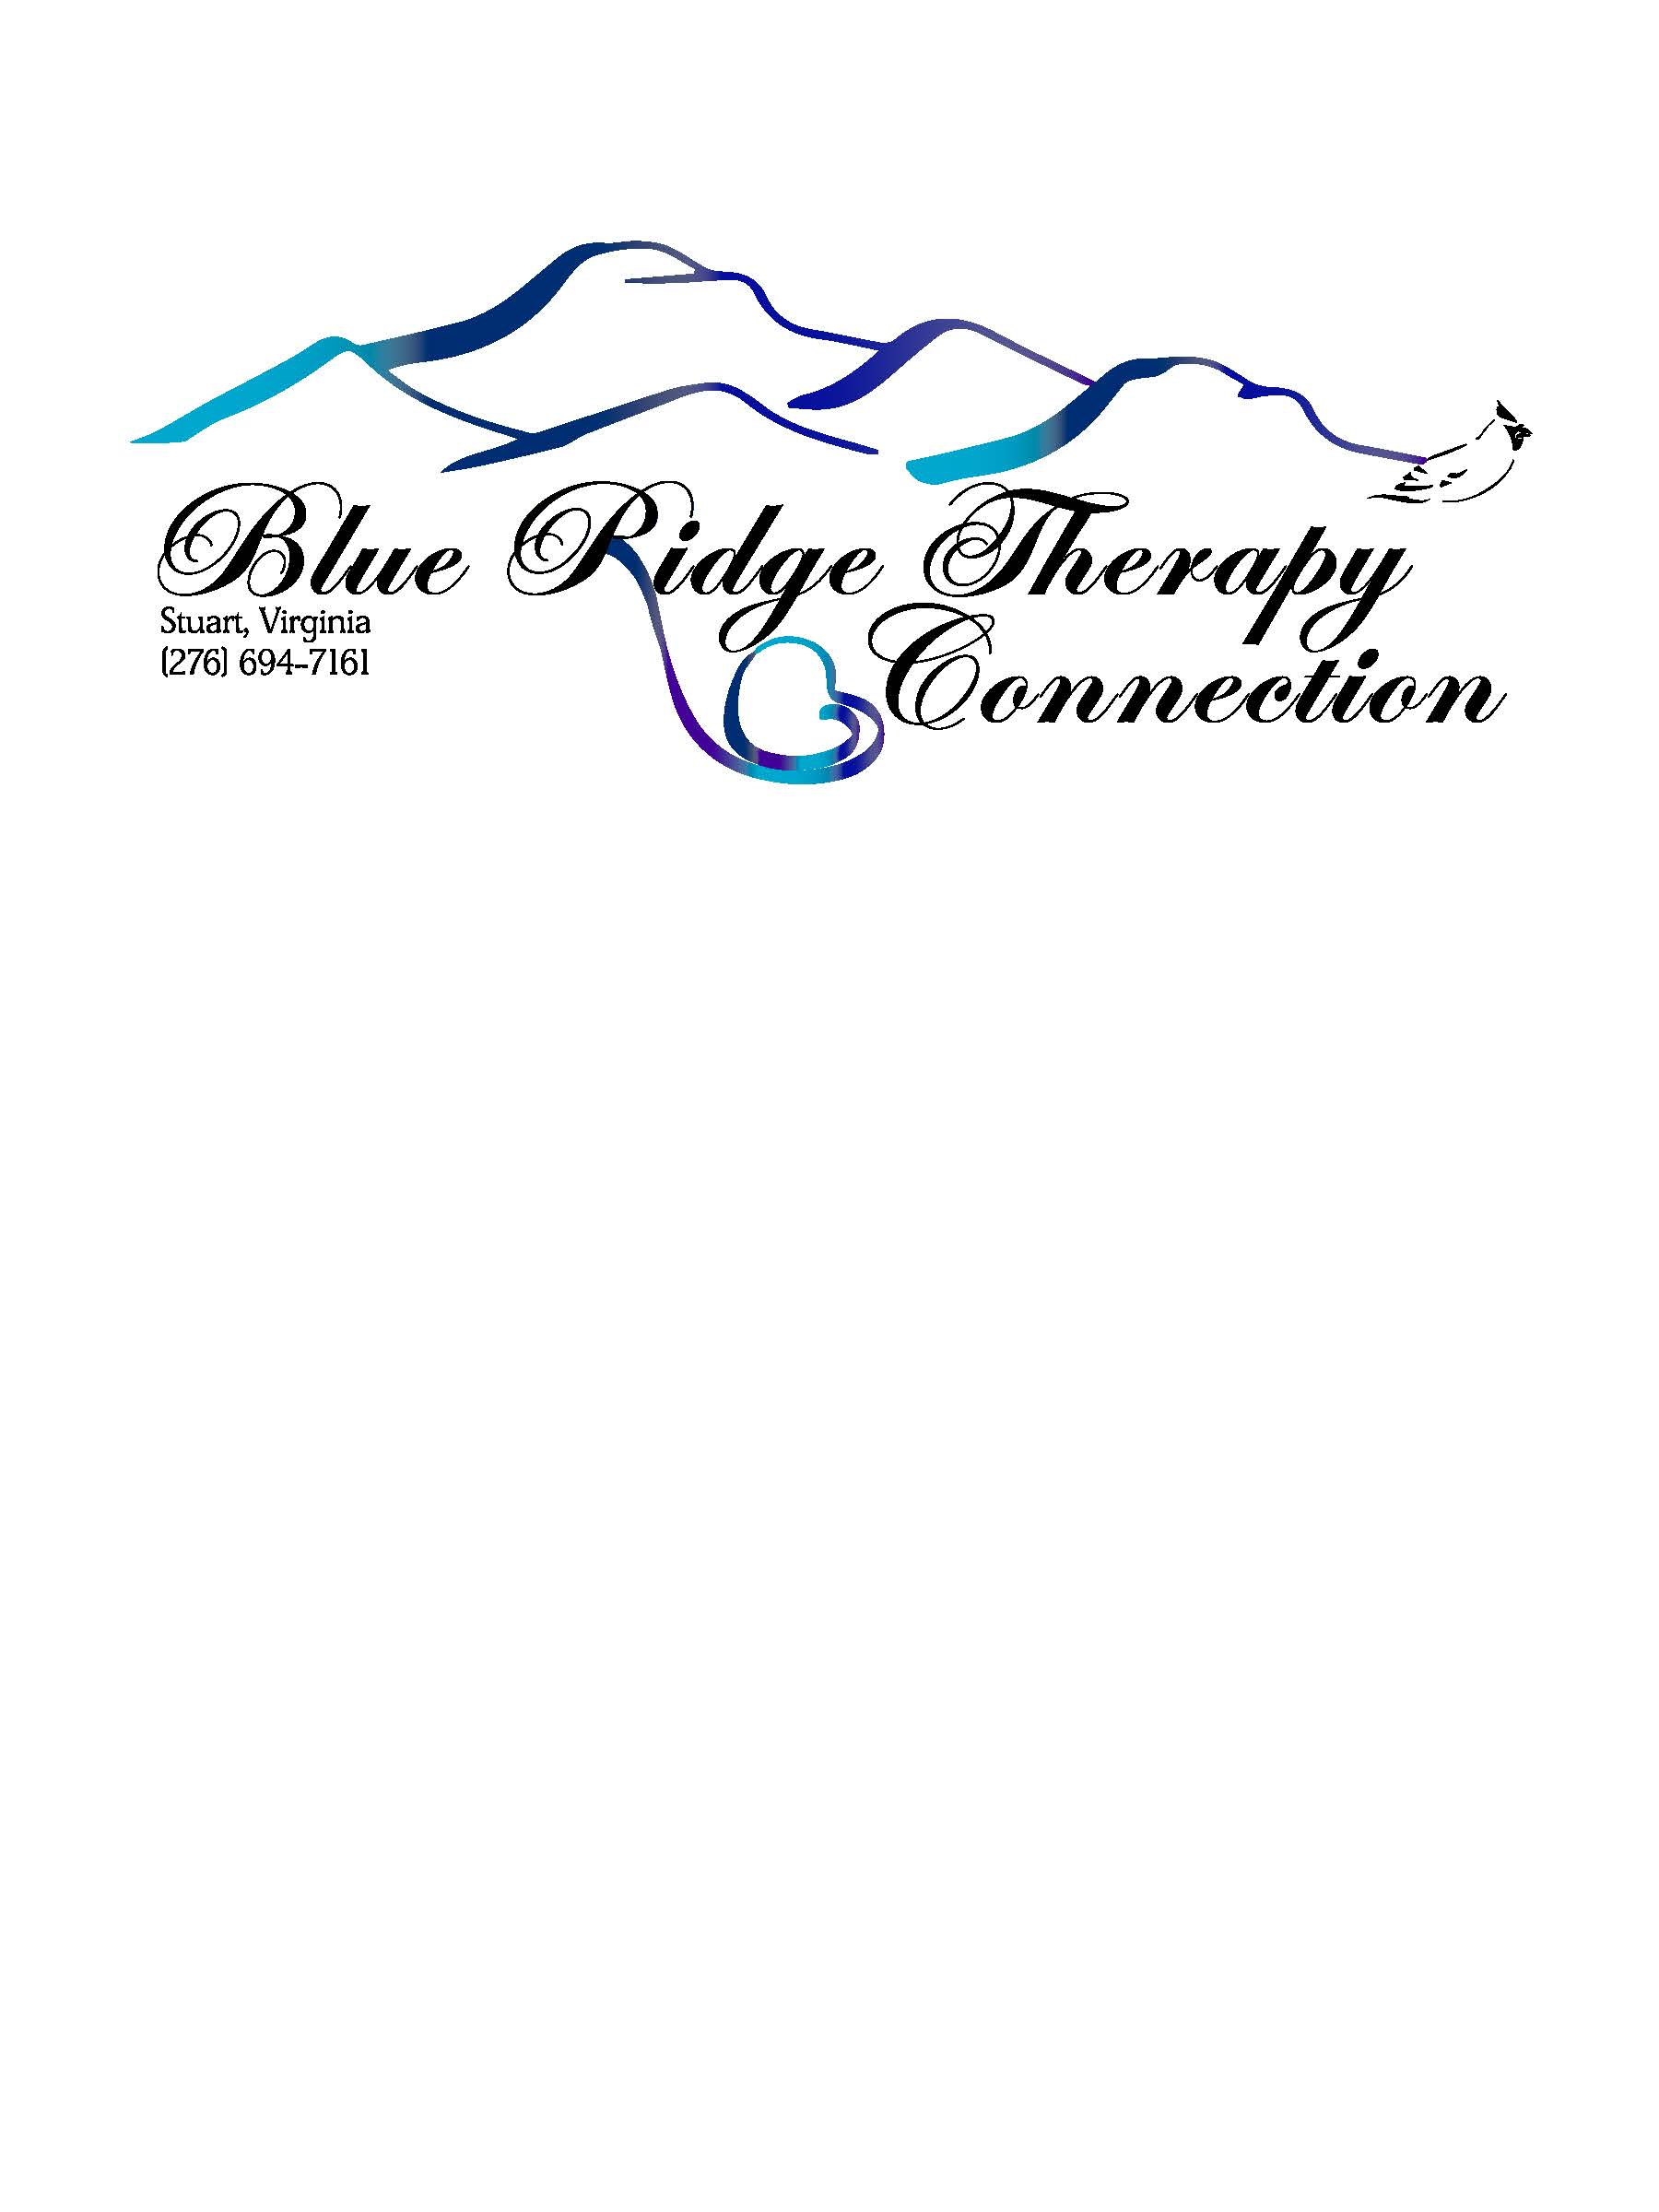 Blue Ridge Therapy Connection logo